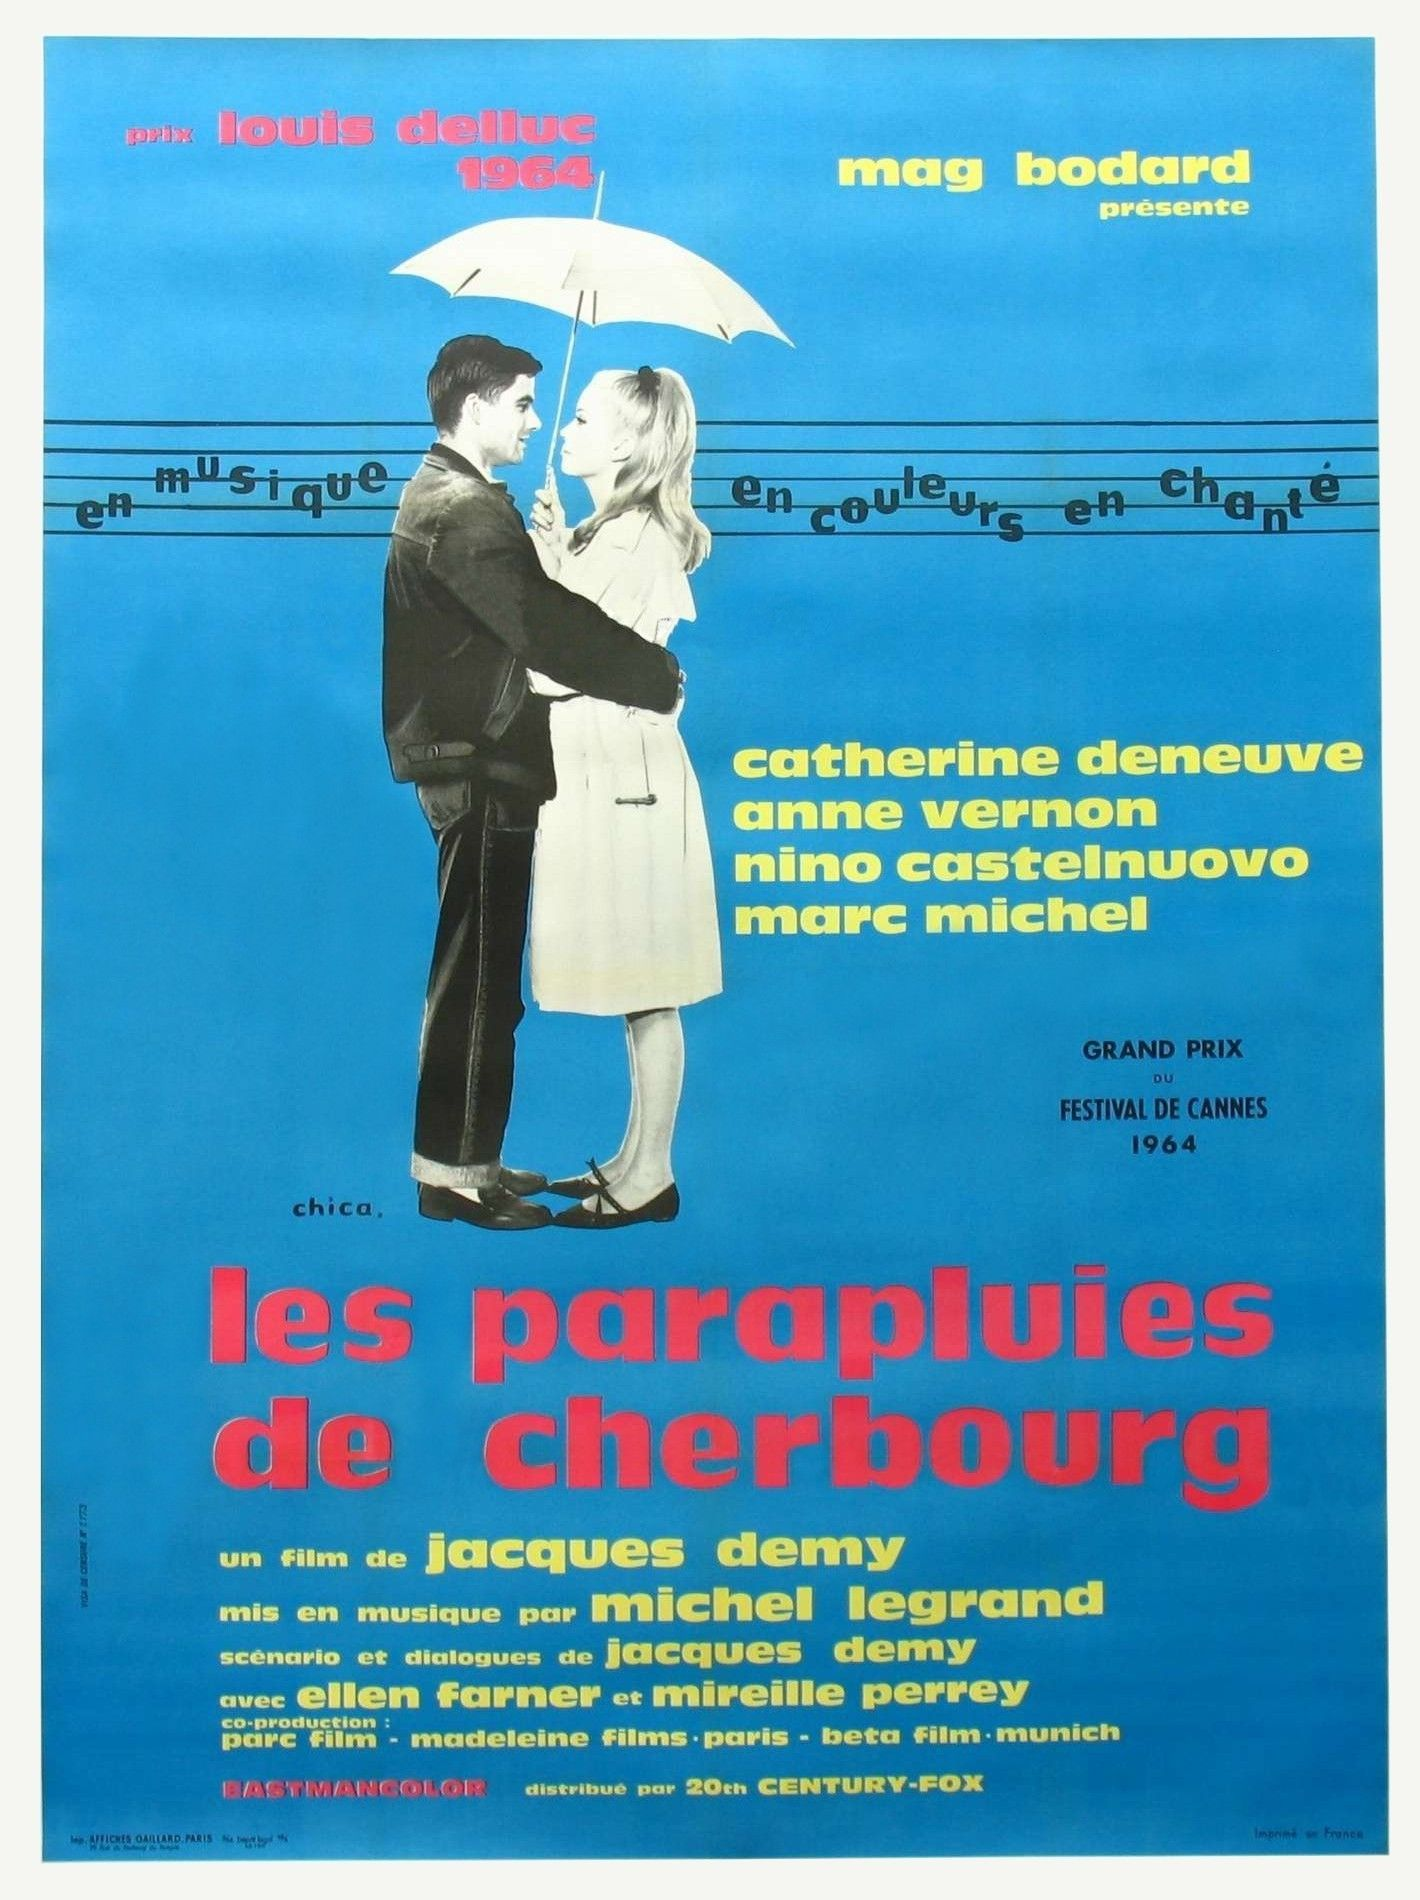 Jacques Demy Umbrellas Of Cherbourg 1963 The Umbrellas Of